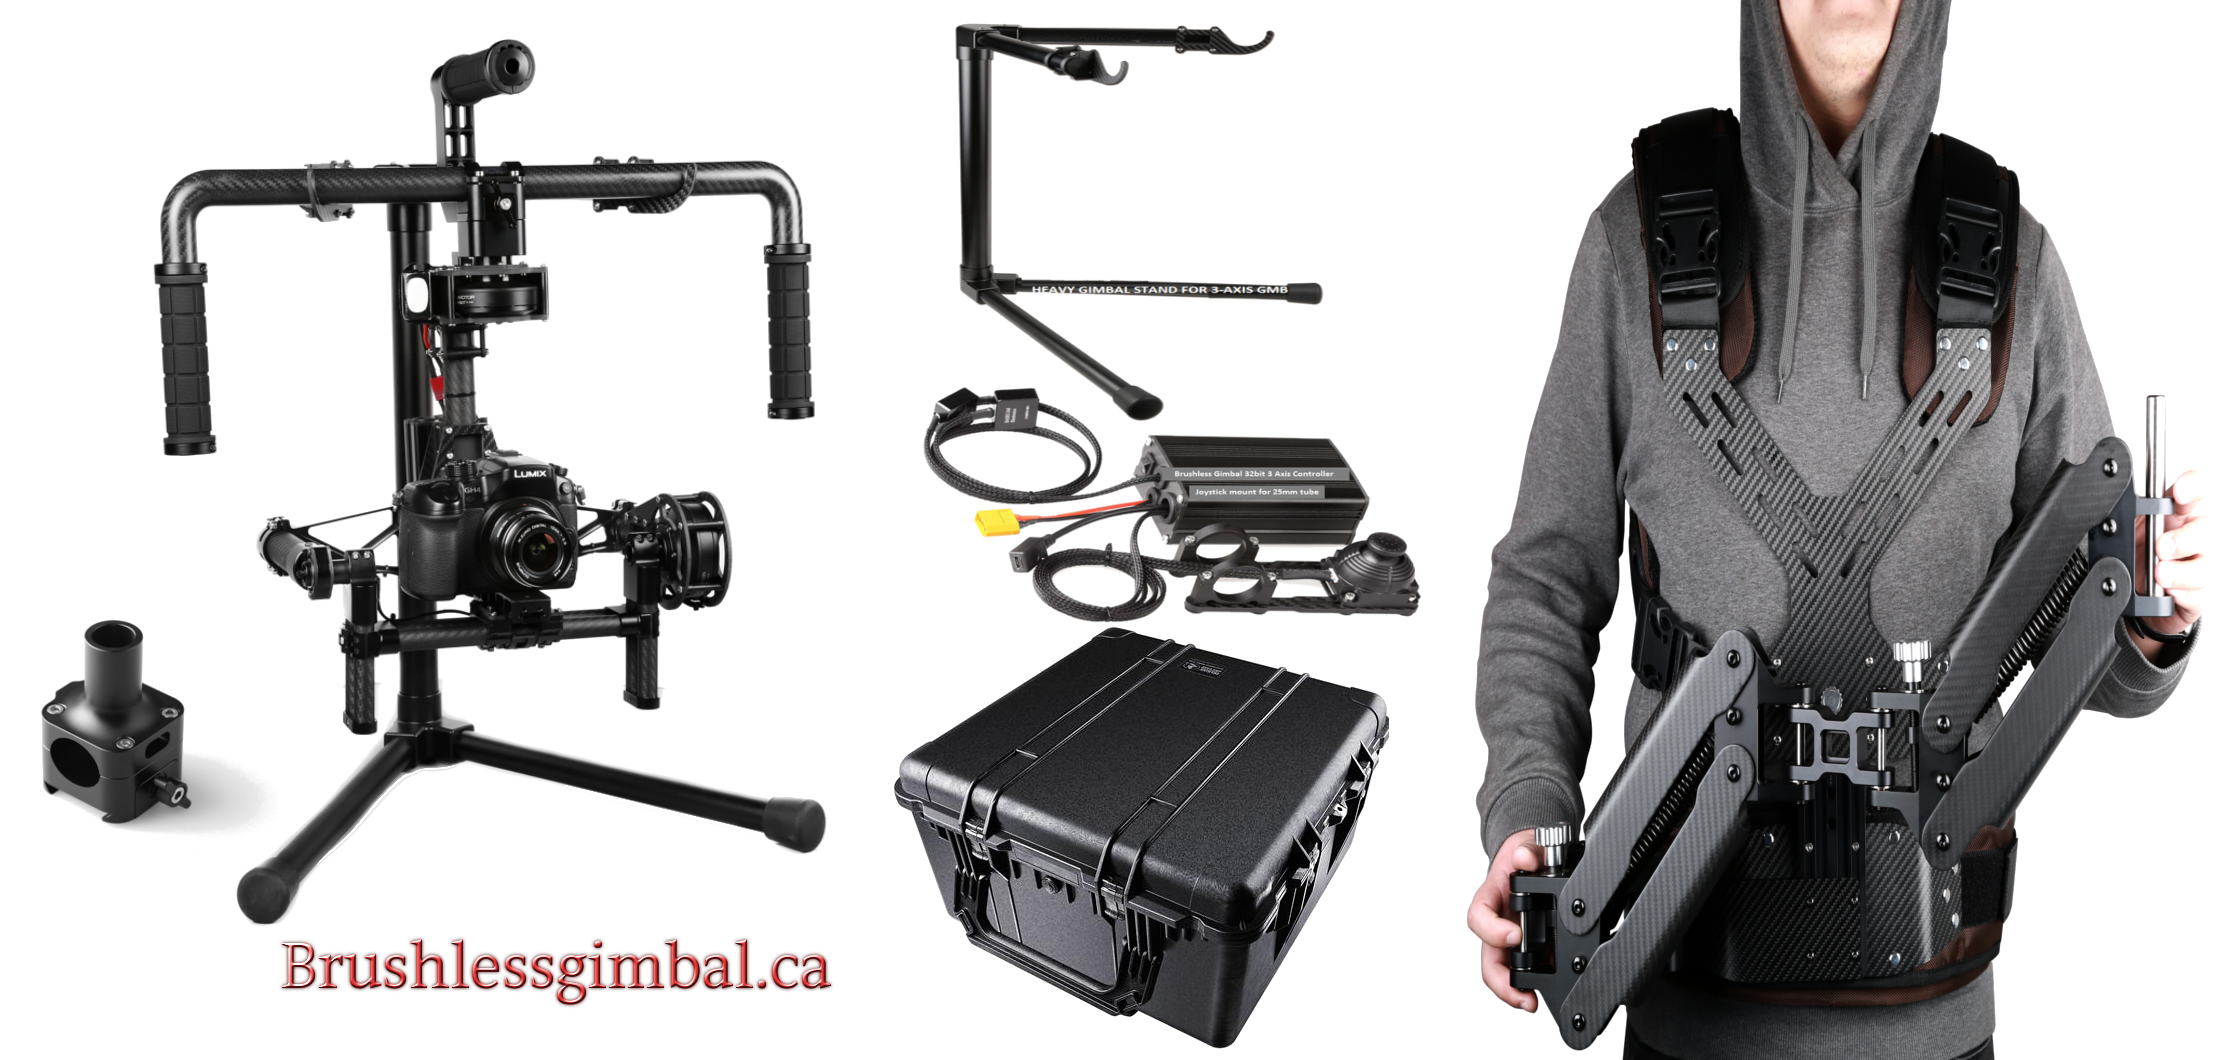 3 axis BGC Gimbal system & Steady cam Vest kit with carry case